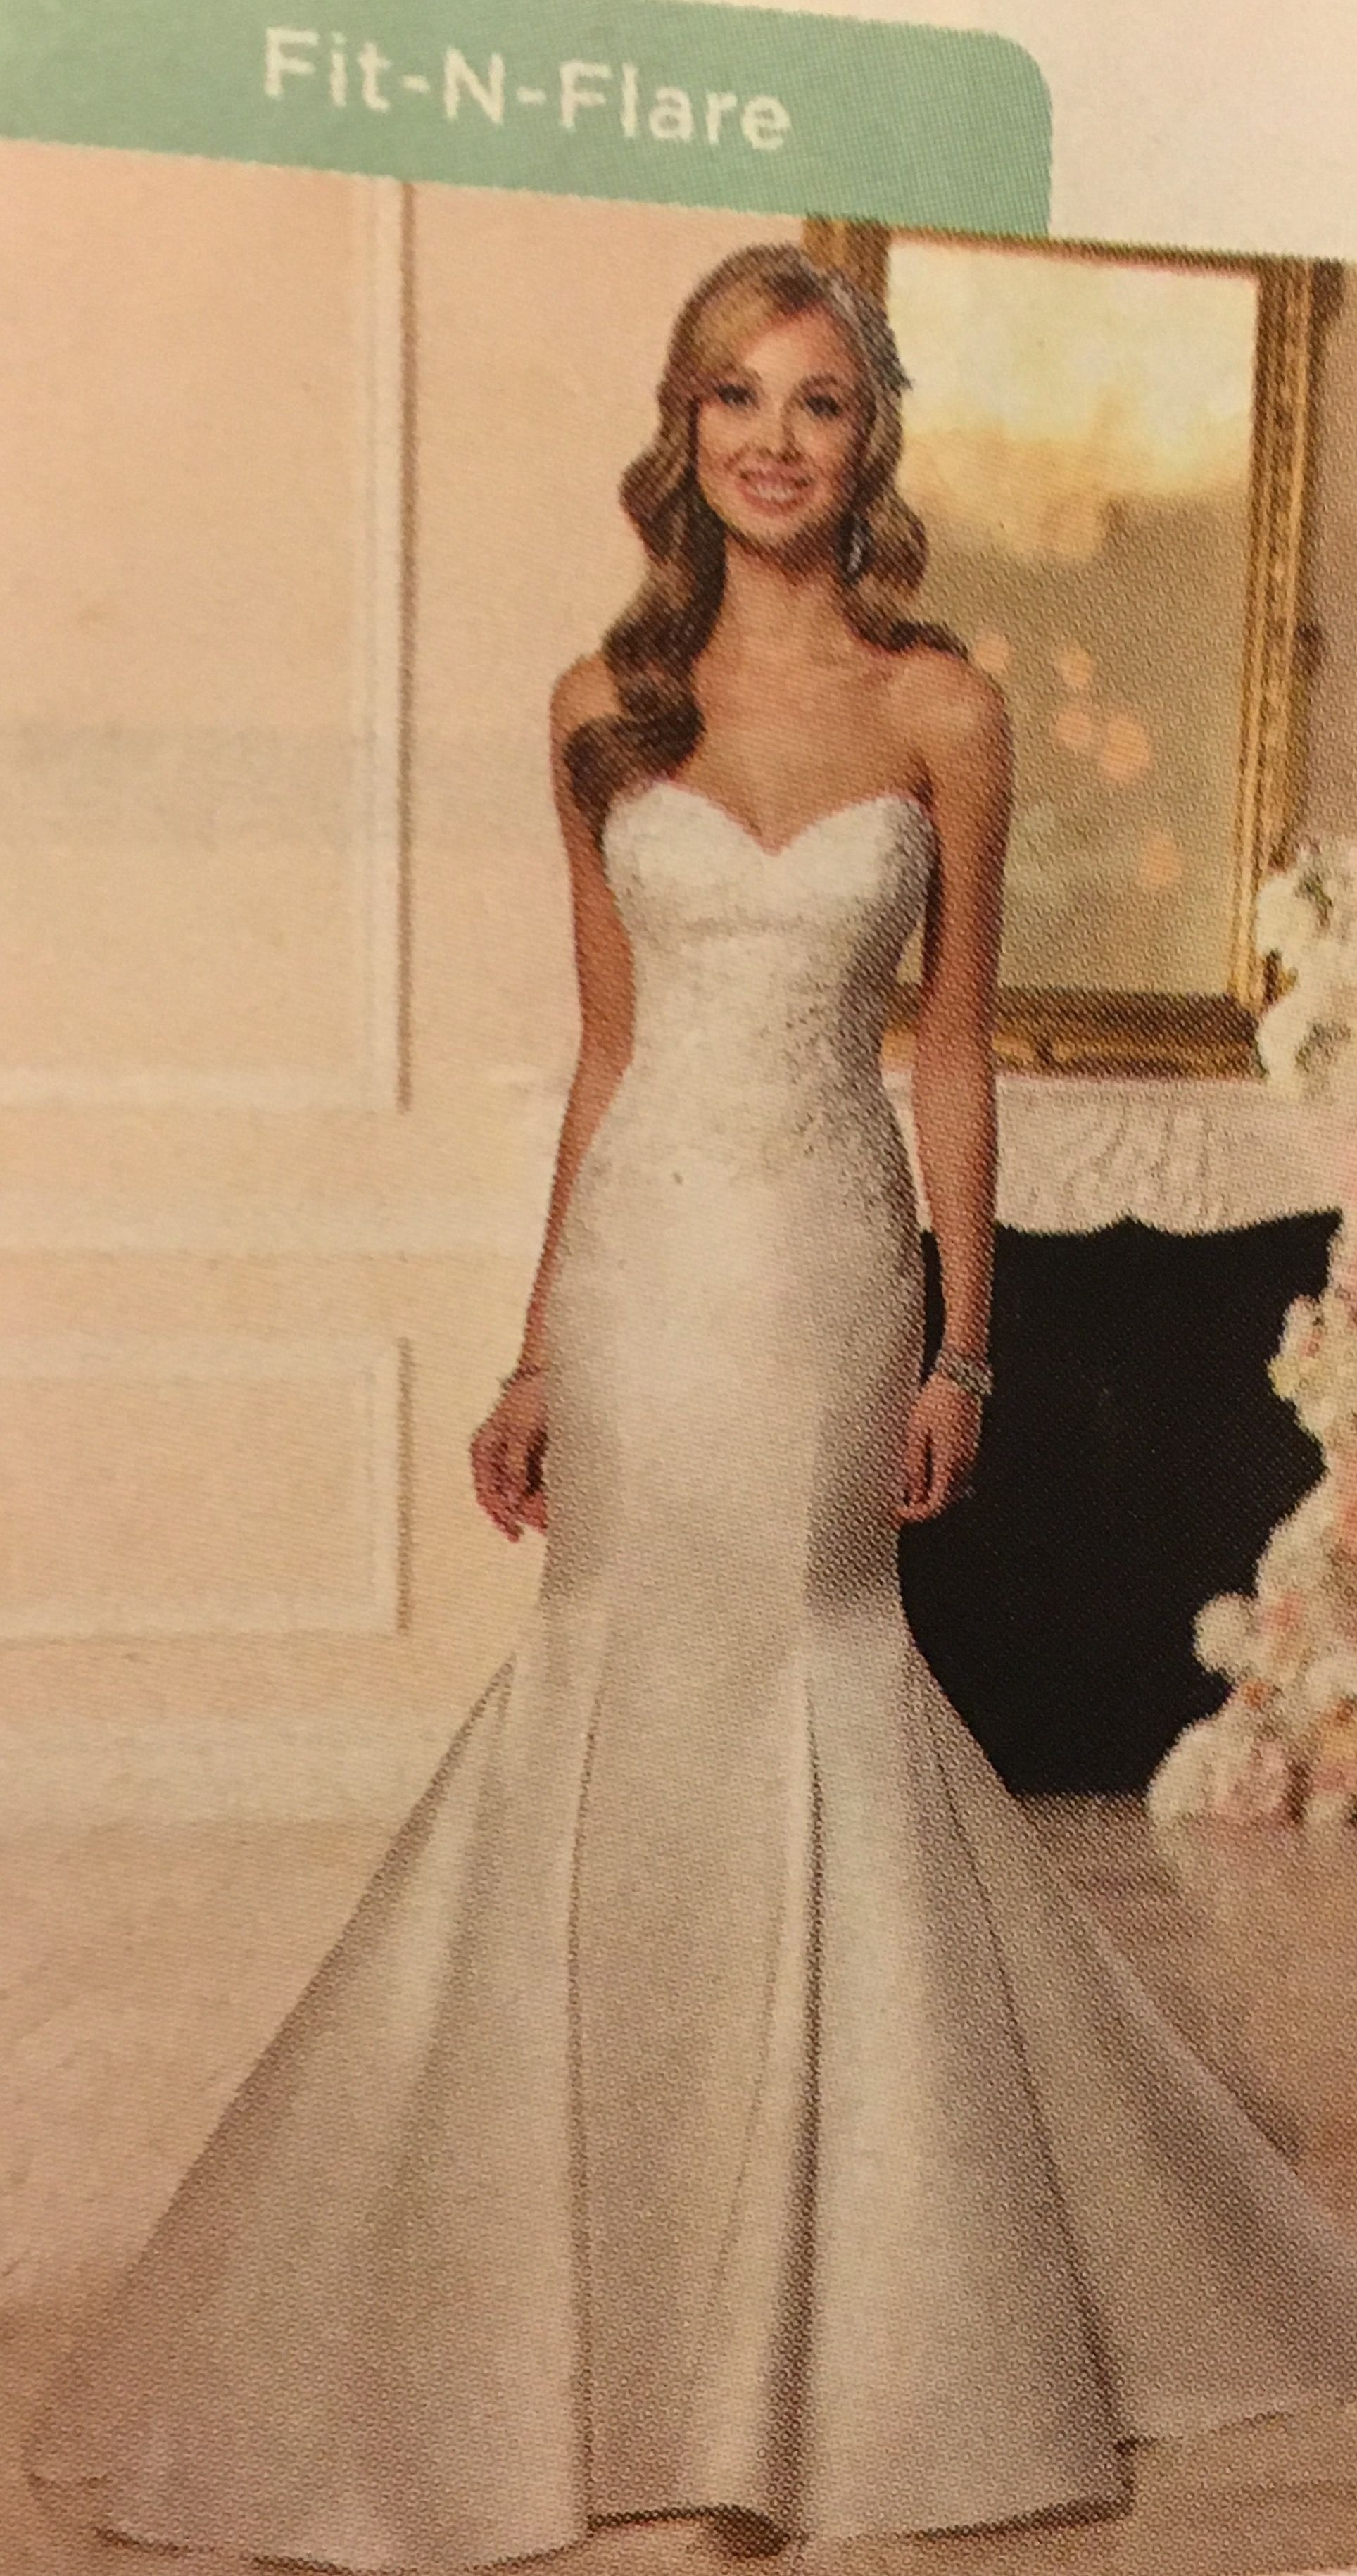 Most revealing wedding dresses ever  Pin by Natalie Finvold on Wedding dresses  Pinterest  Wedding